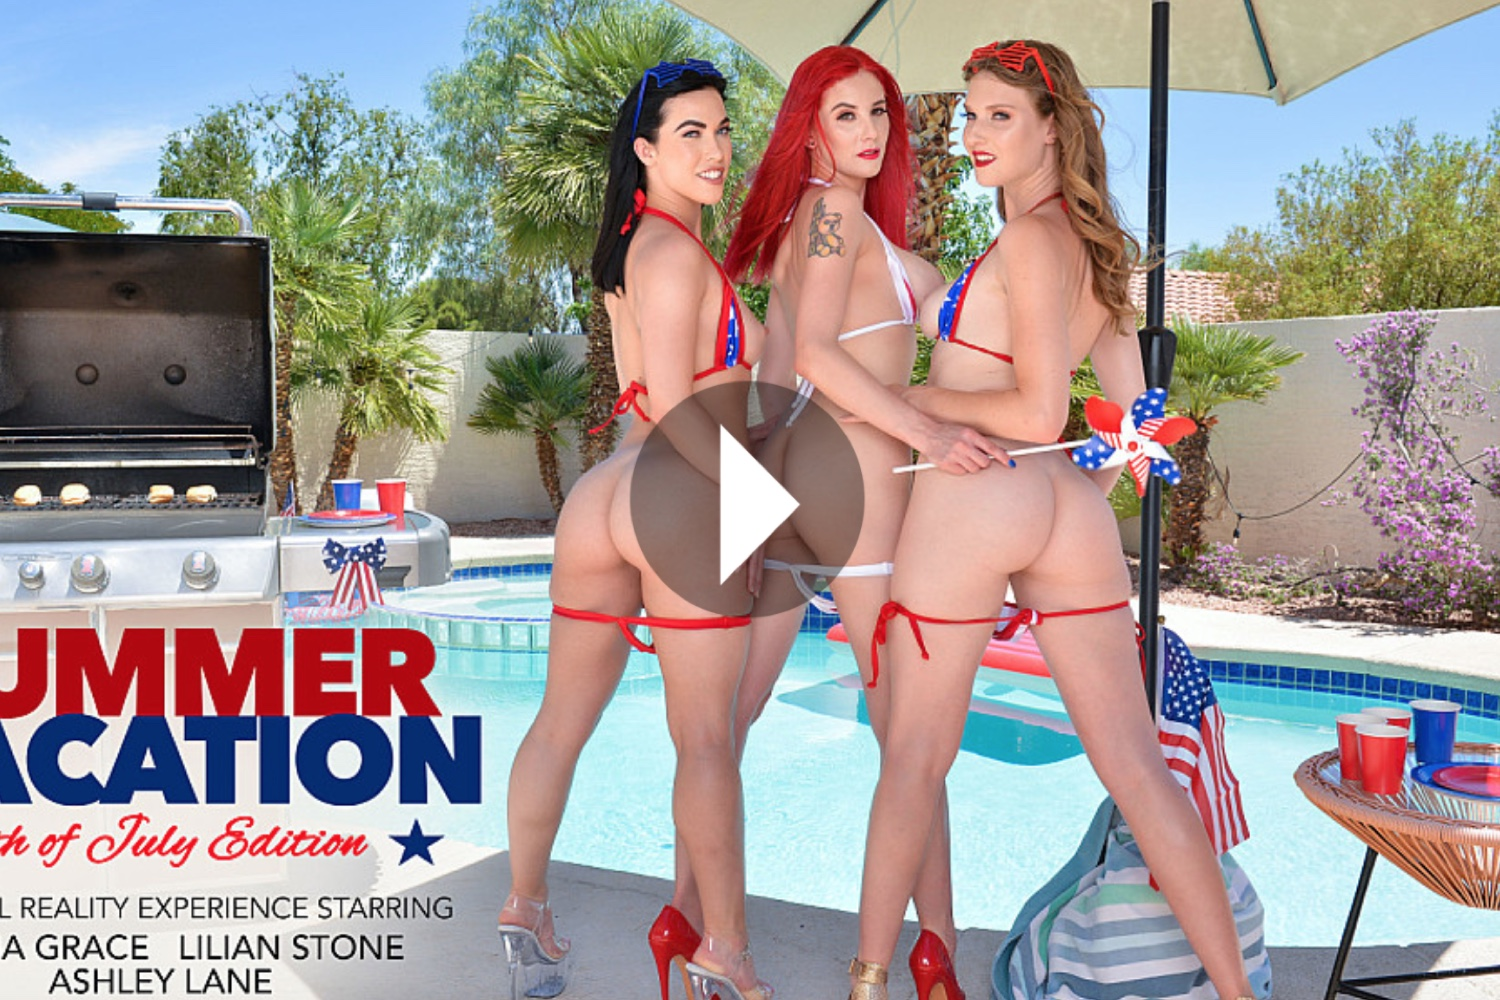 Summer Vacation - 4th of July Edition - Ashley Lane VR Porn - Ashley Lane Virtual Reality Porn - Lilian Stone VR Porn - Lilian Stone Virtual Reality Porn - Diana Grace VR Porn - Diana Grace Virtual Reality Porn